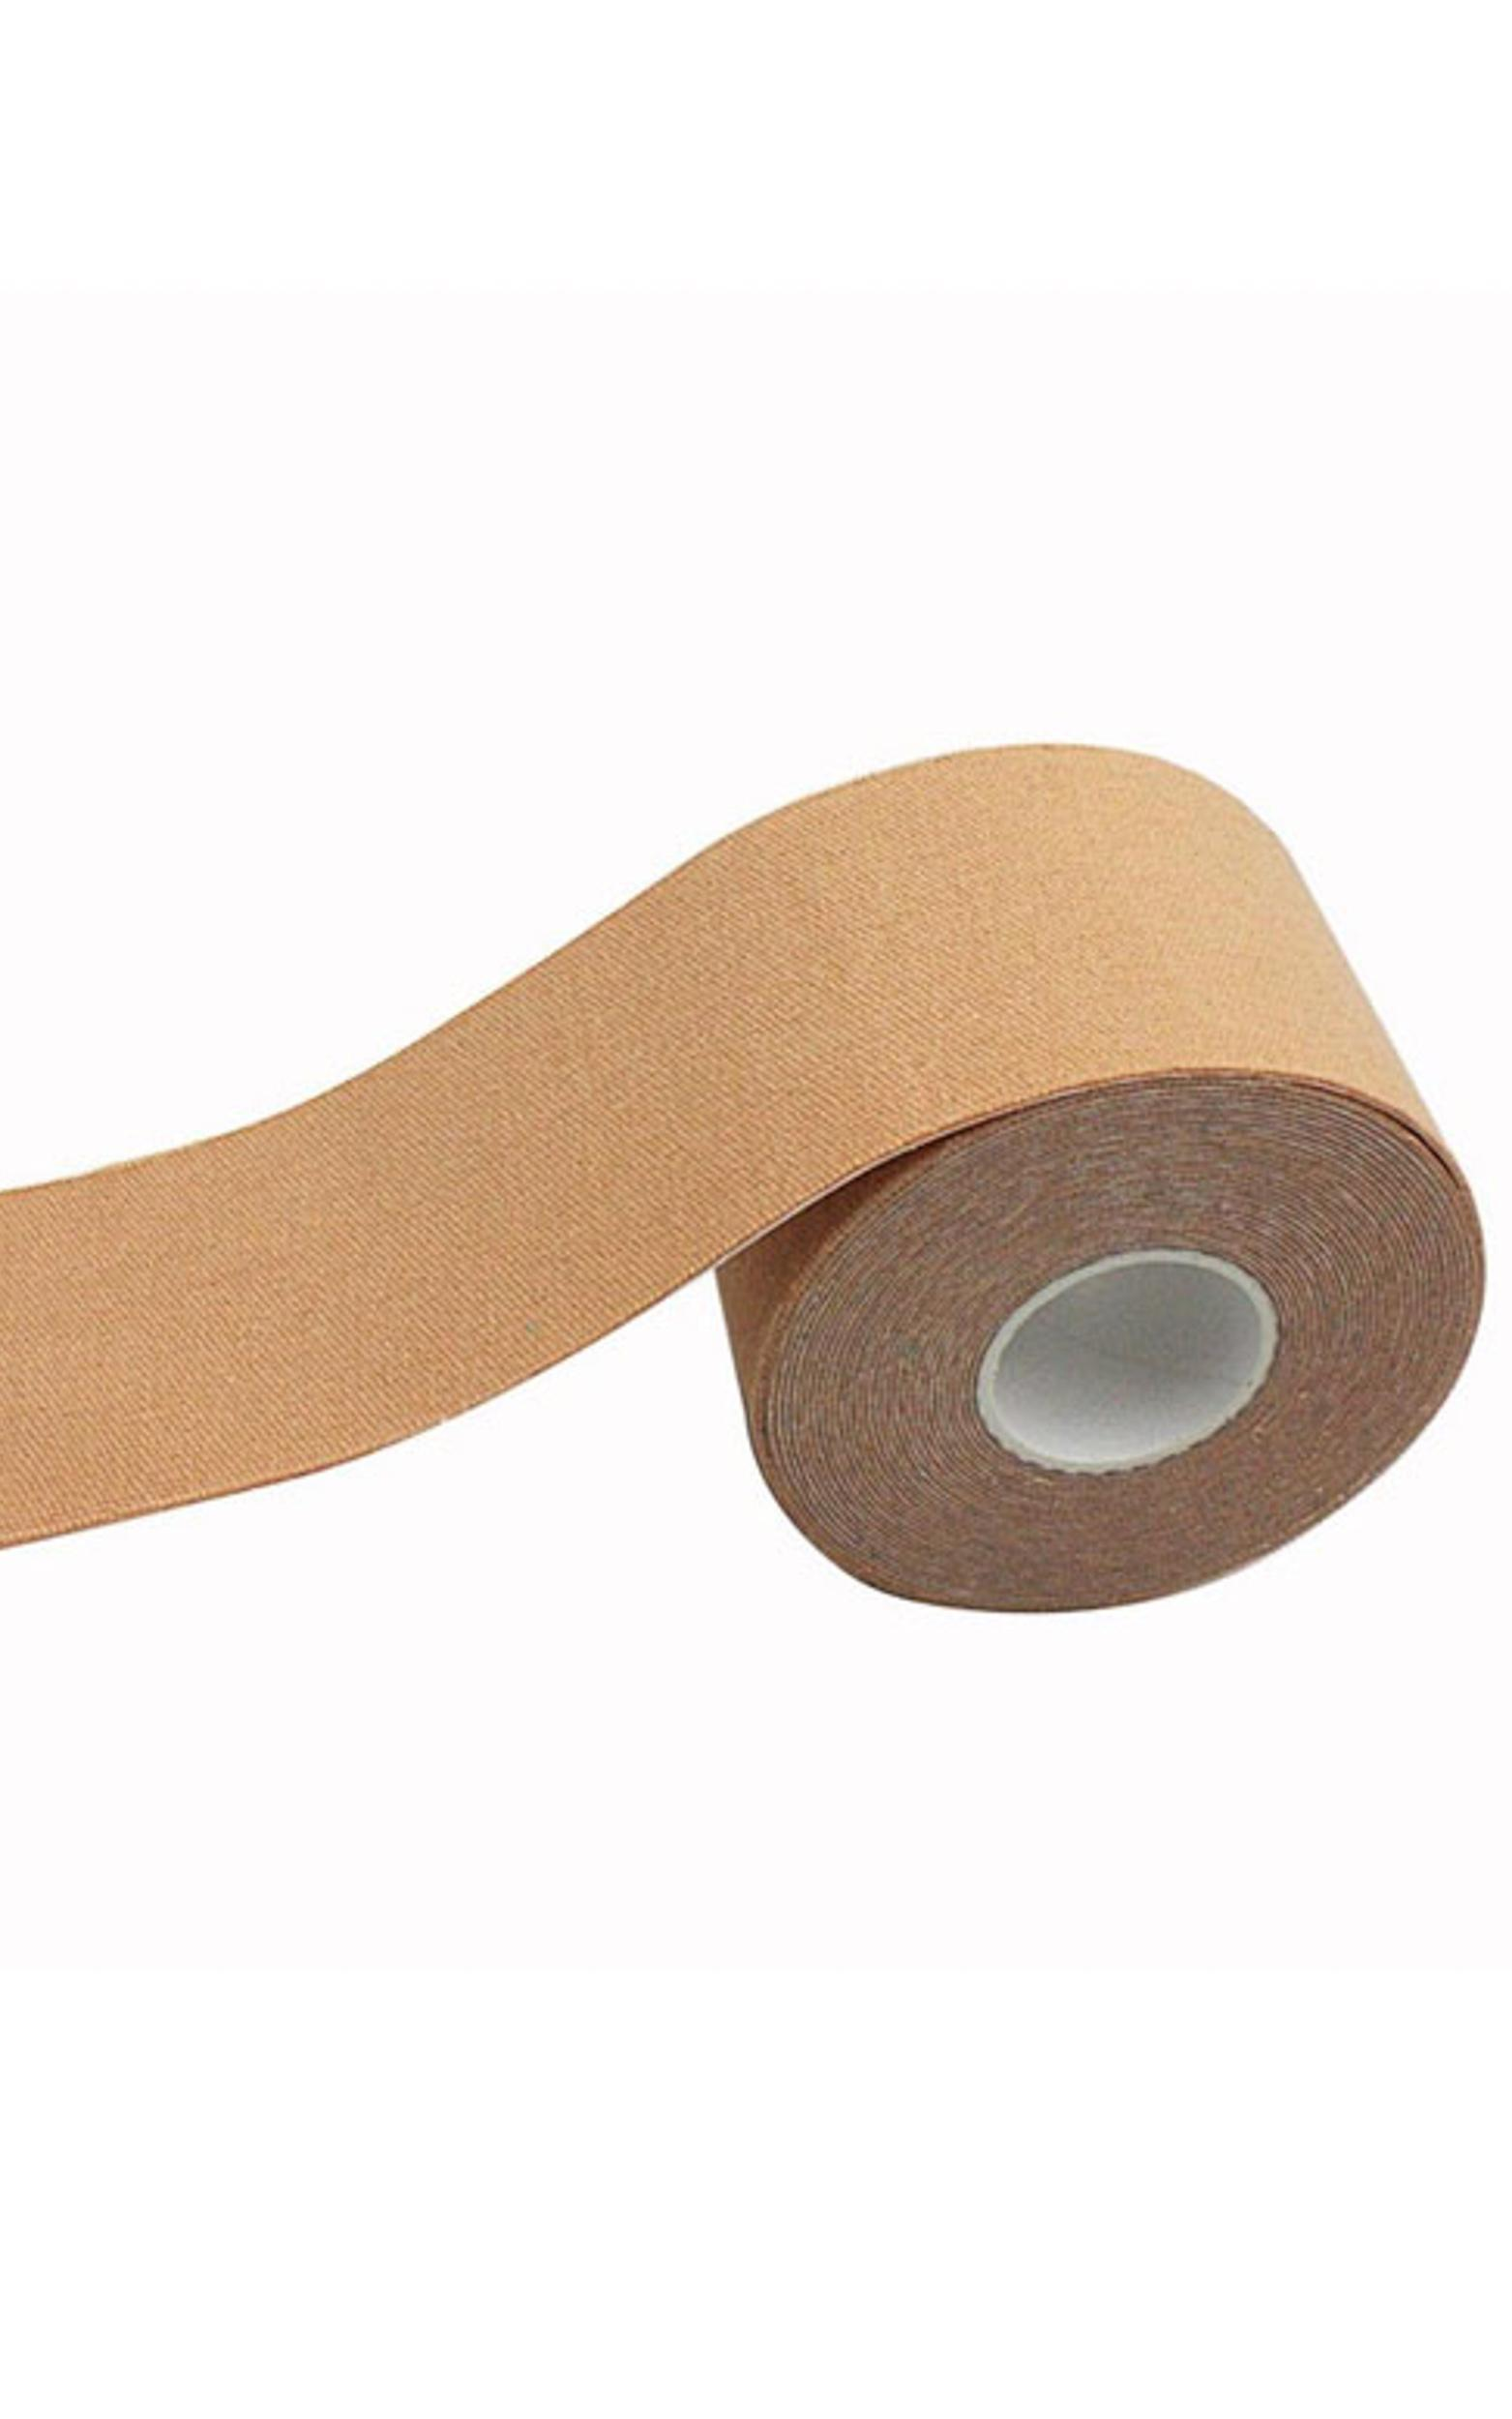 Booby Tape in Nude, Brown, hi-res image number null